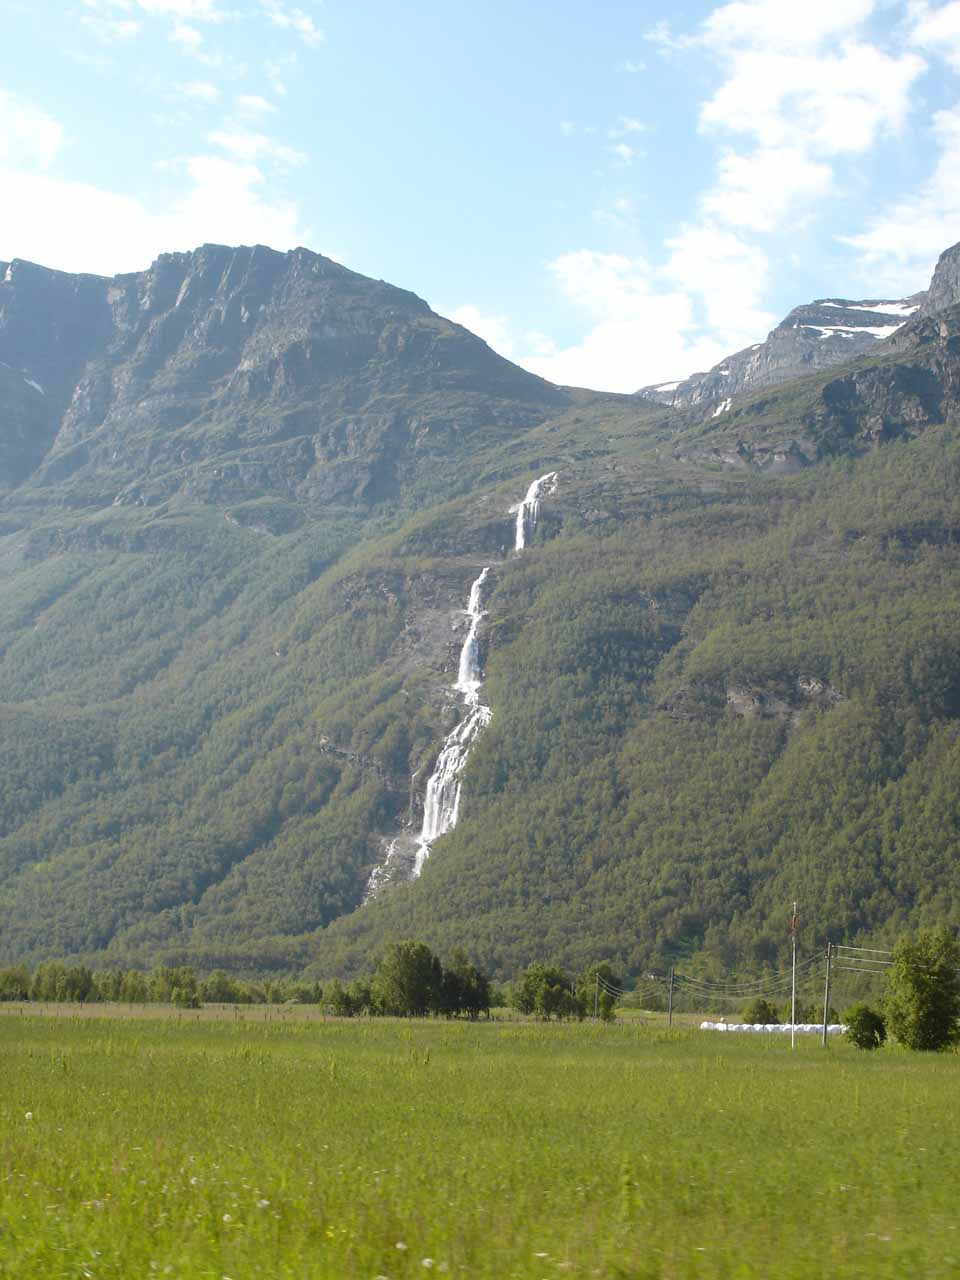 I called this waterfall 'Oksefossen' since it was on the river Okseelva as we briefly went into Kåfjorddalen